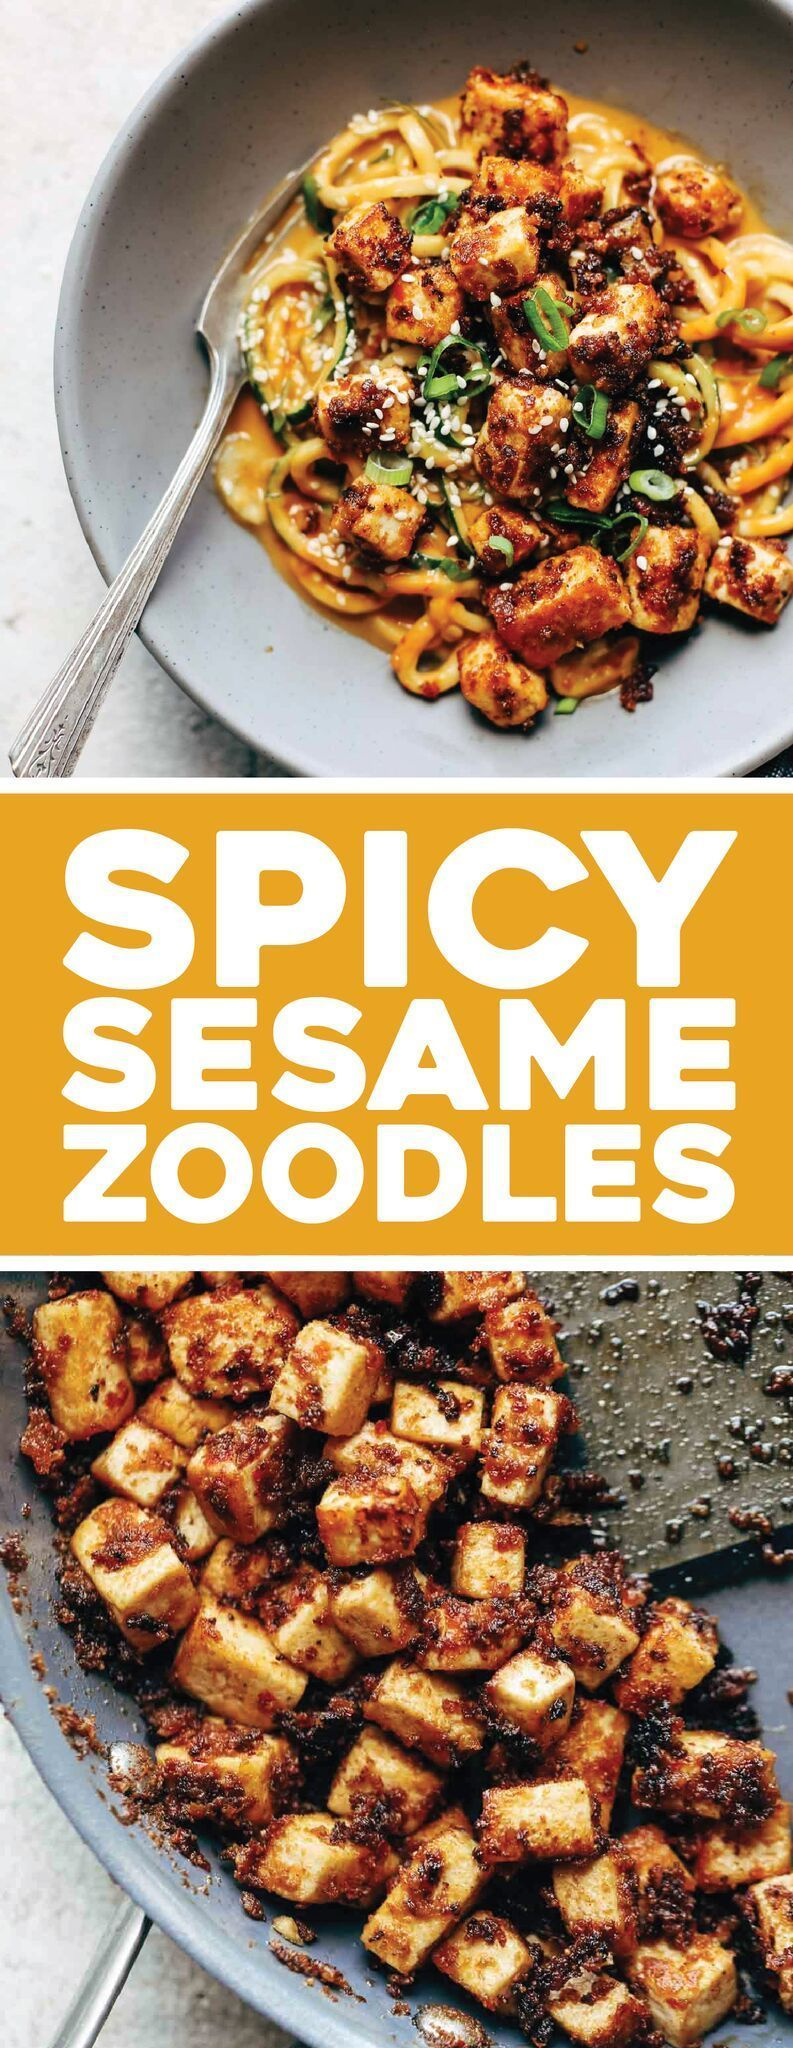 Sesame Zoodles with Crispy Tofu Spicy Sesame Zoodles with Crispy Tofu! SUPER easy recipe with familiar ingredients - soy sauce, peanut butter, sesame oil, garlic, zucchini, and tofu. Vegan / Vegetarian | Spicy Sesame Zoodles with Crispy Tofu! SUPER easy recipe with familiar ingredients - soy sauce, peanut butter, sesame oil, garlic, zucchi...